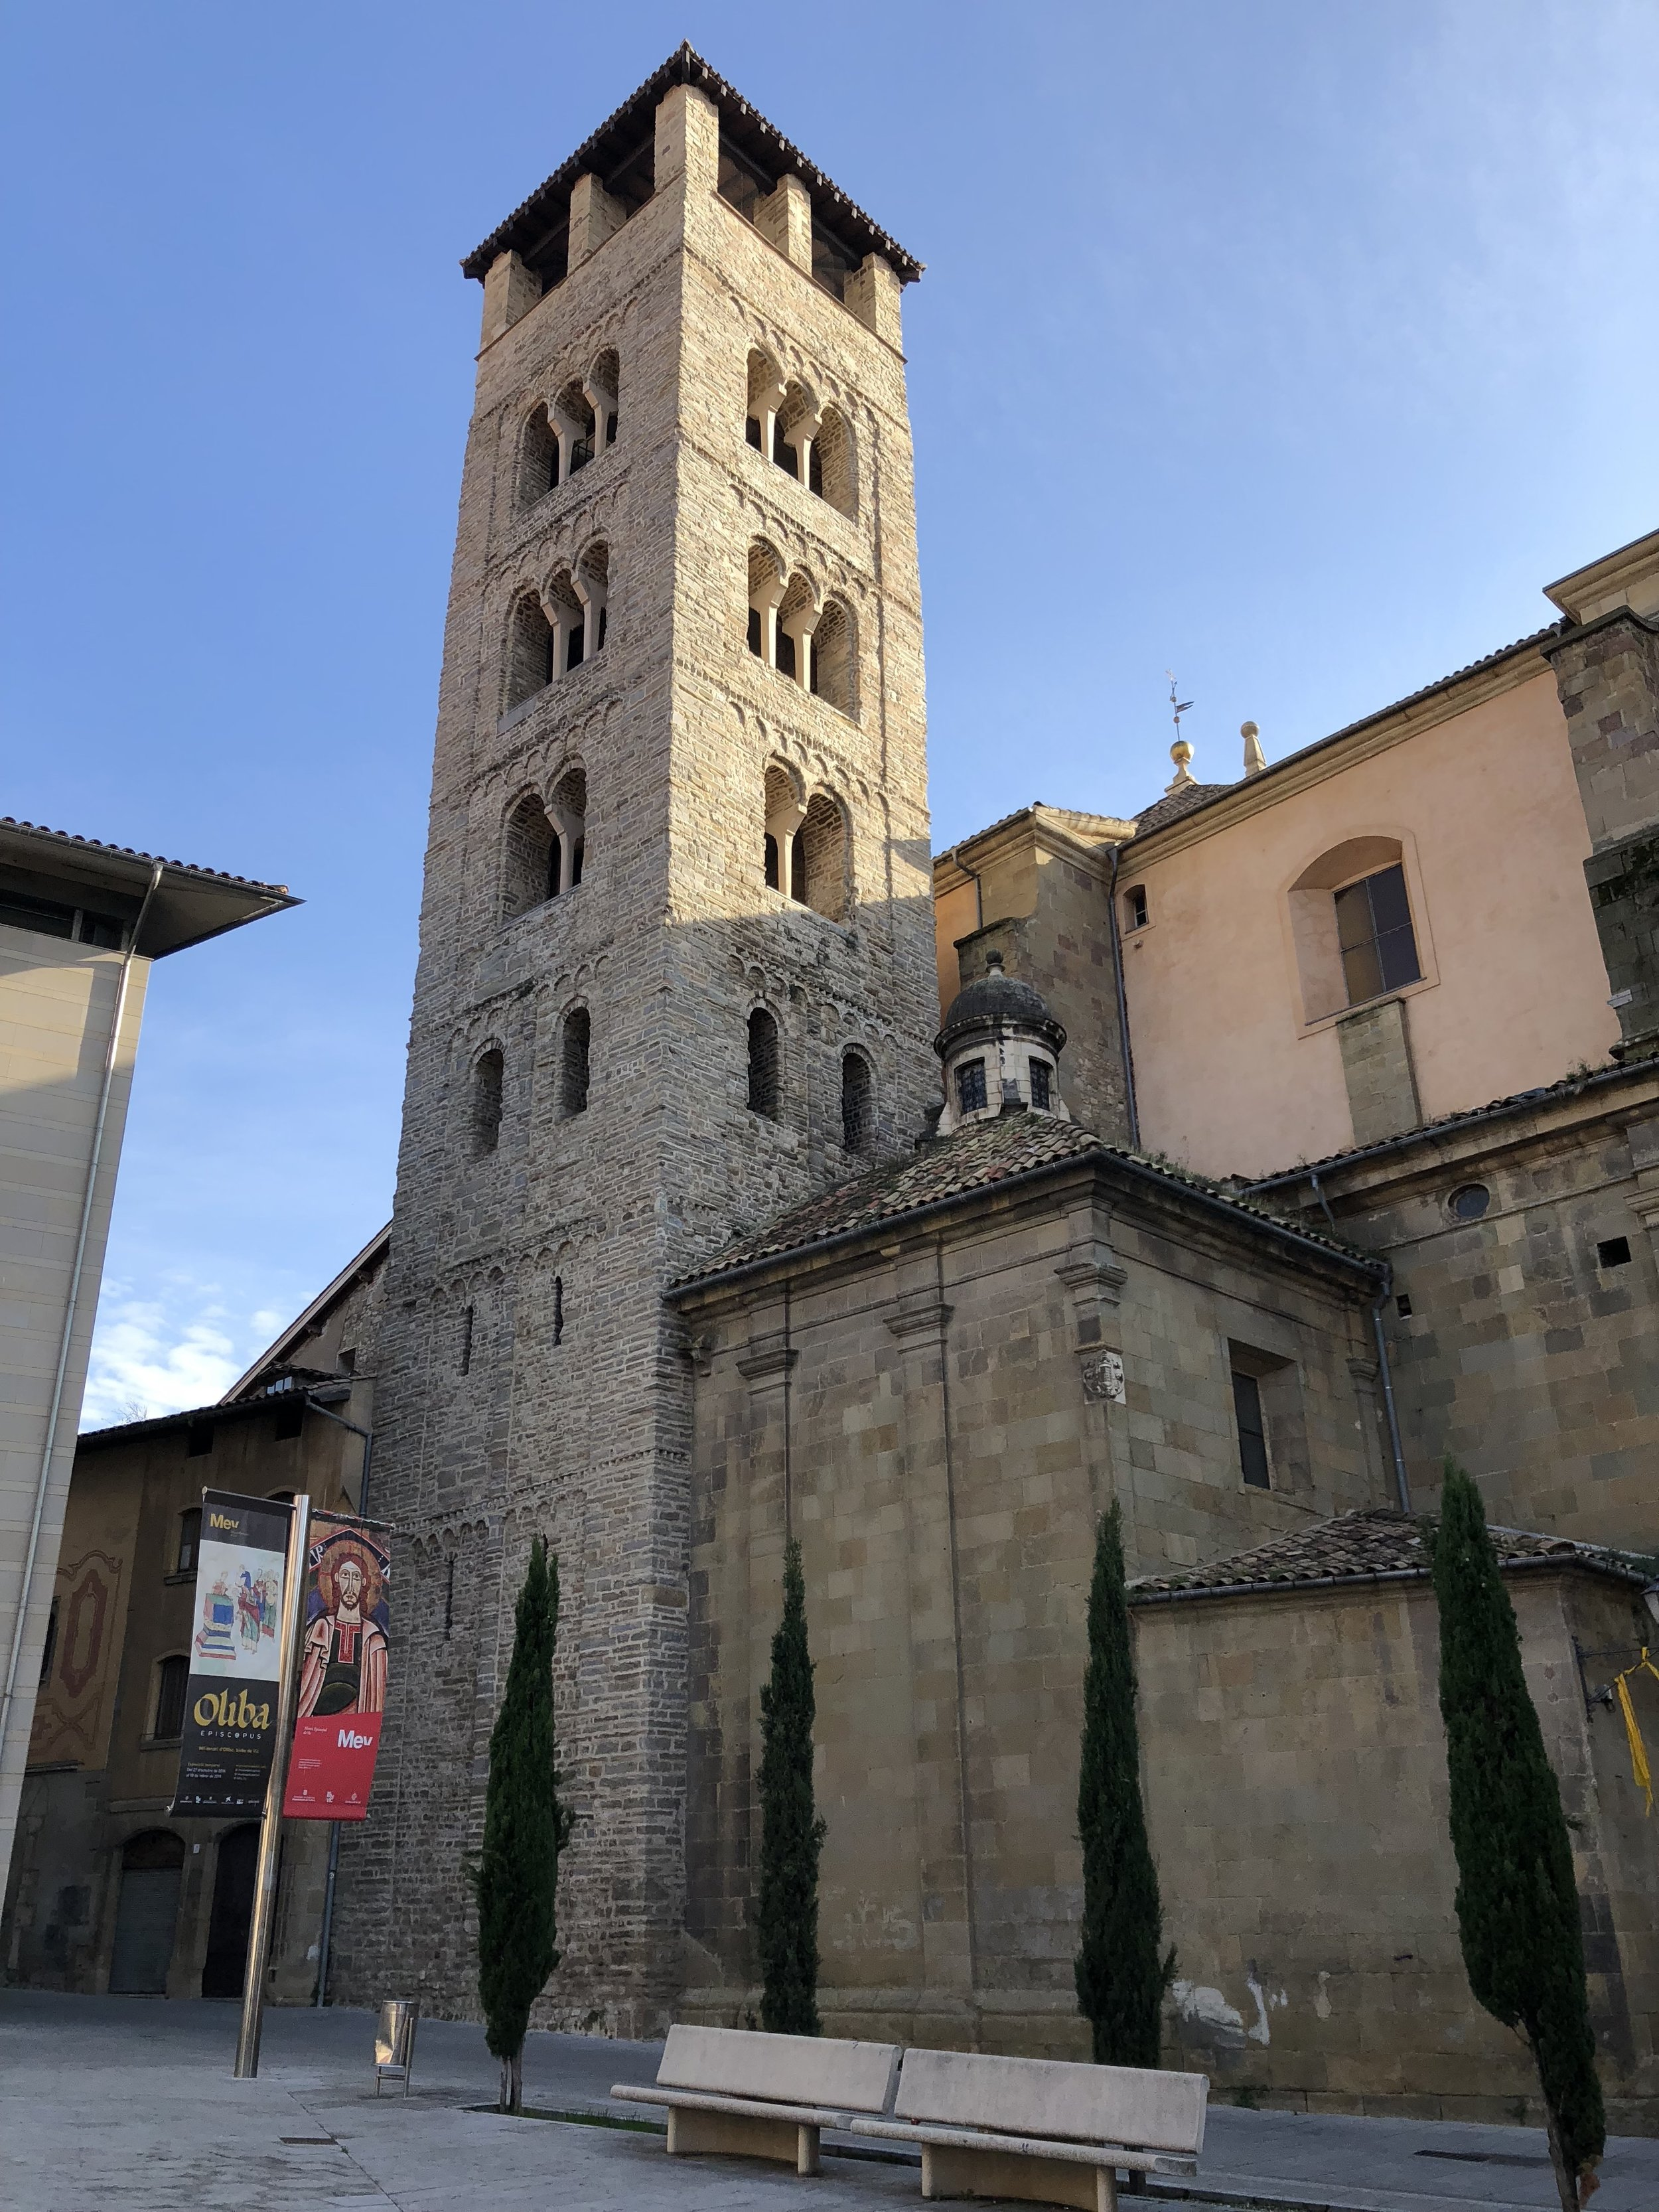 An old tower in the heart of Vic, a lovely town located an hour outside of Barcelona in the mountains